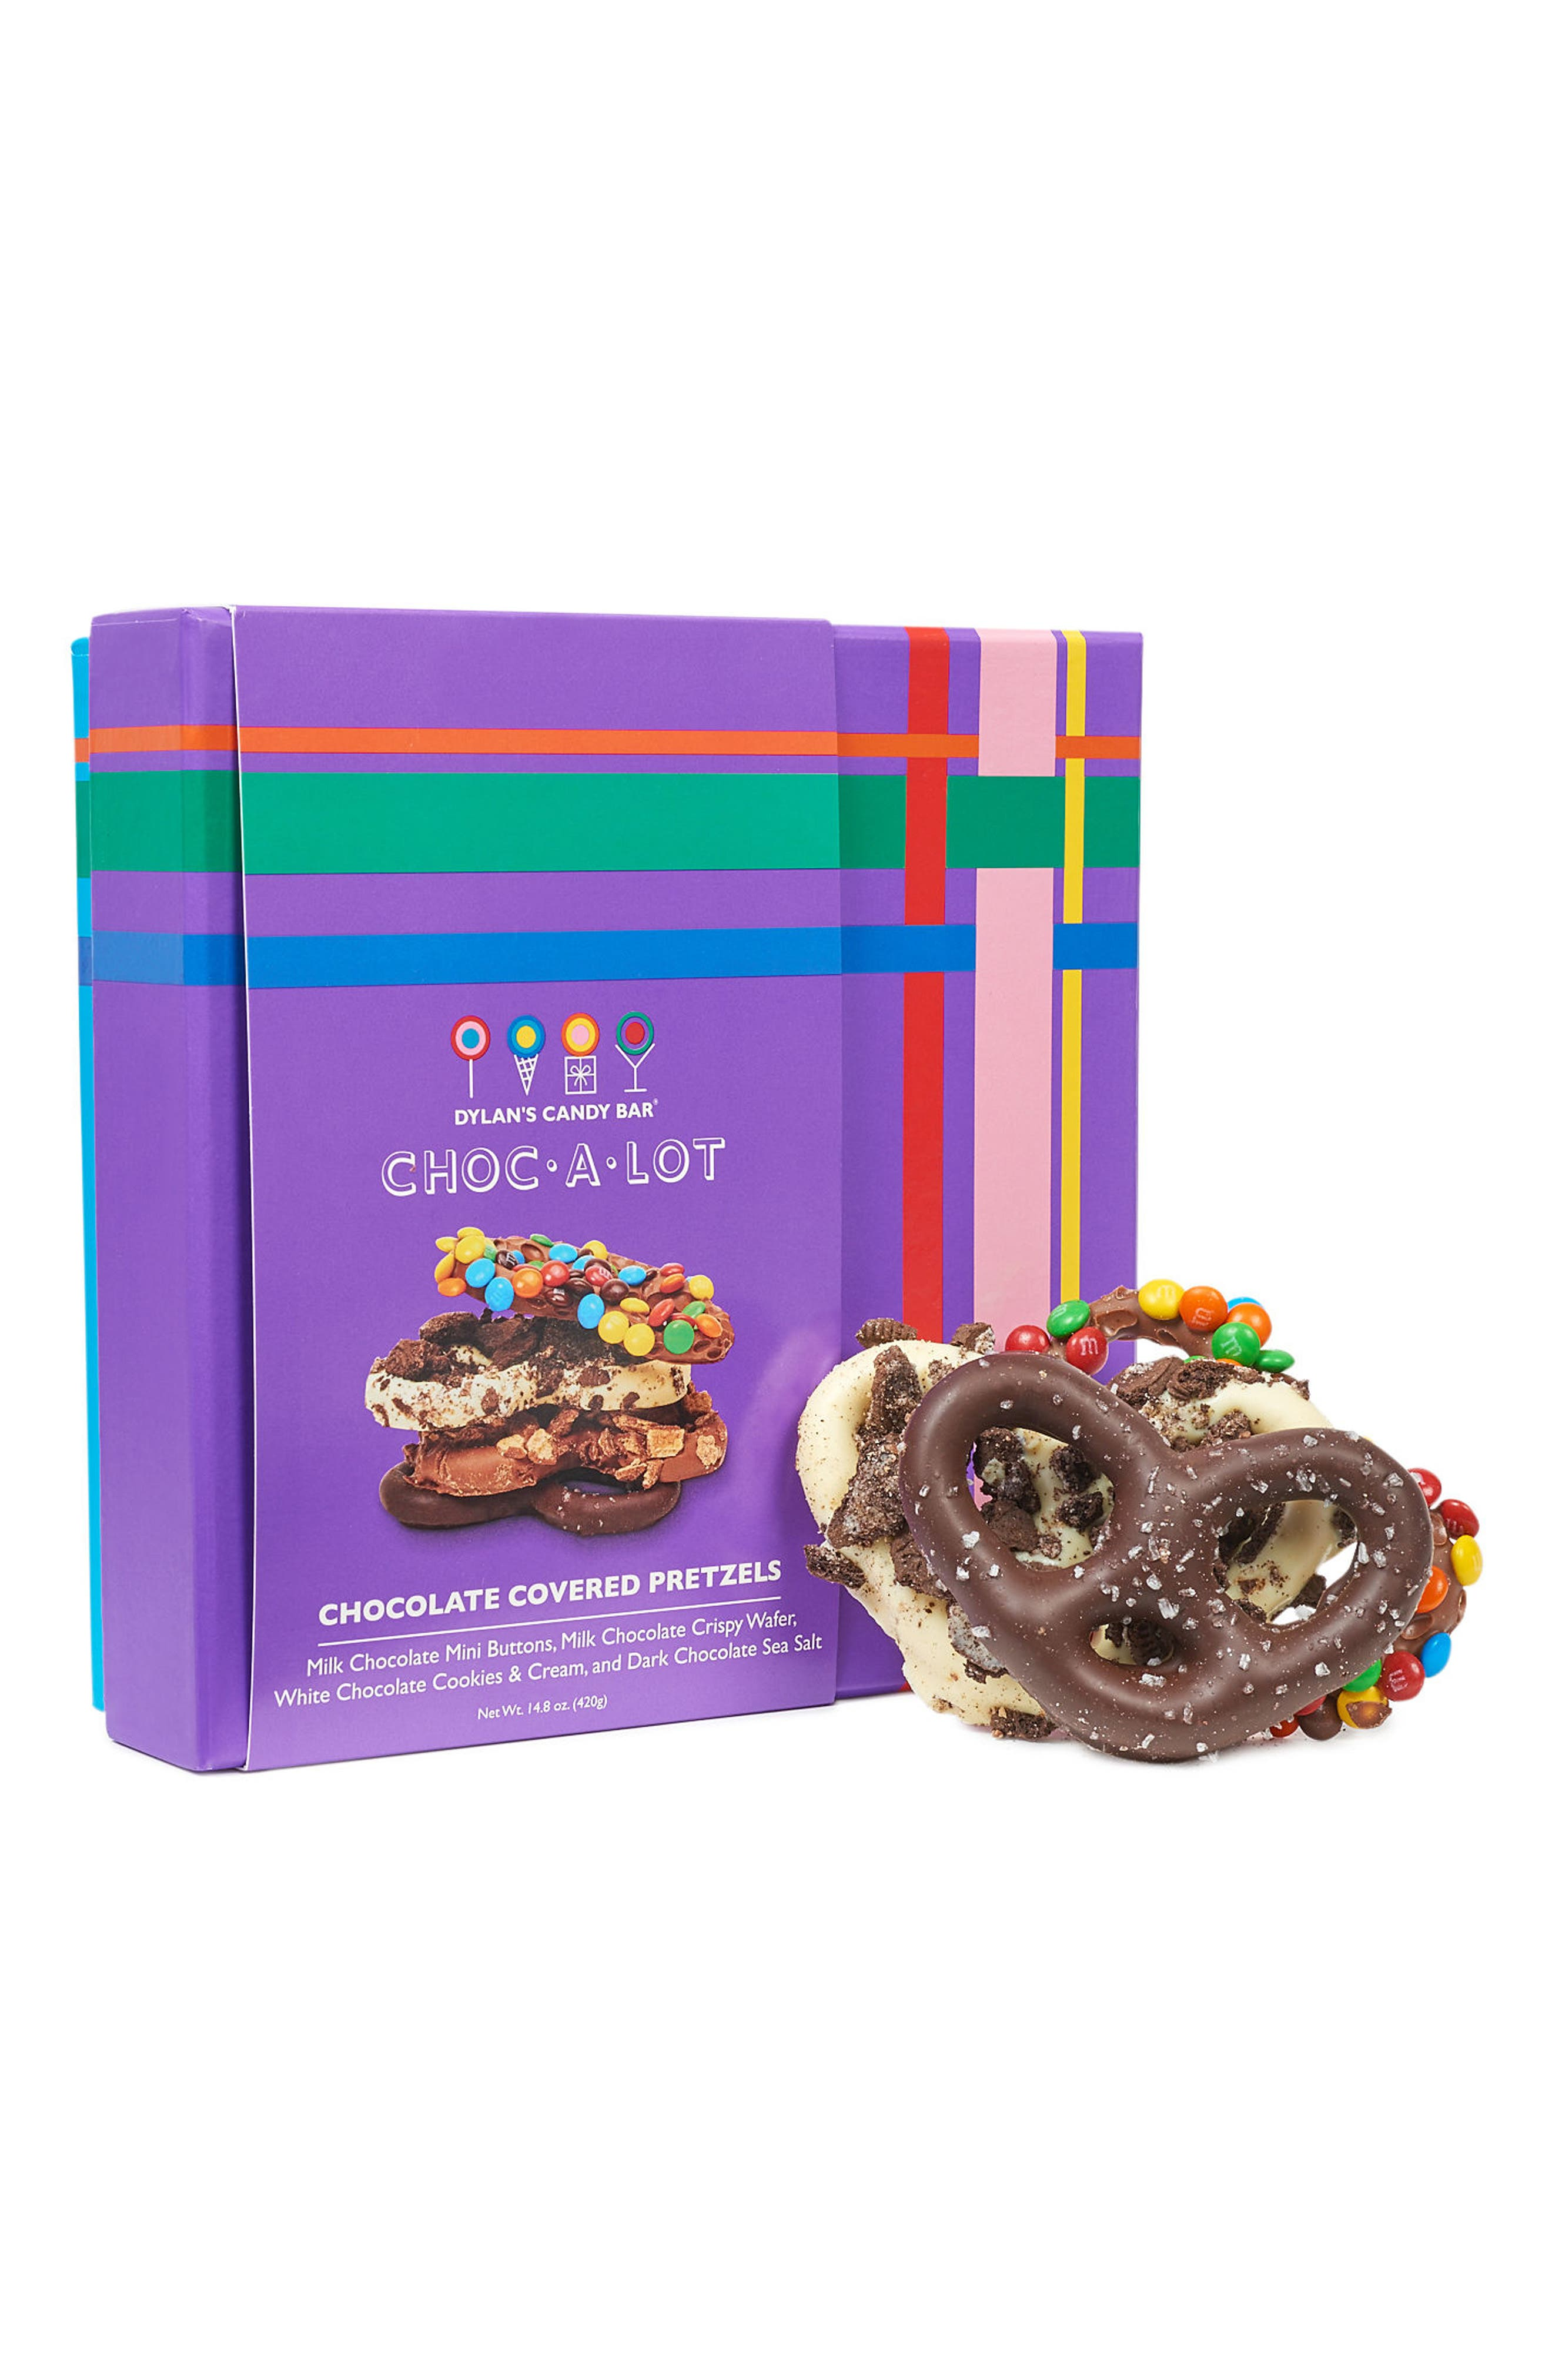 Main Image - Dylan's Candy Bar Choc-A-Lot Chocolate Covered Pretzels